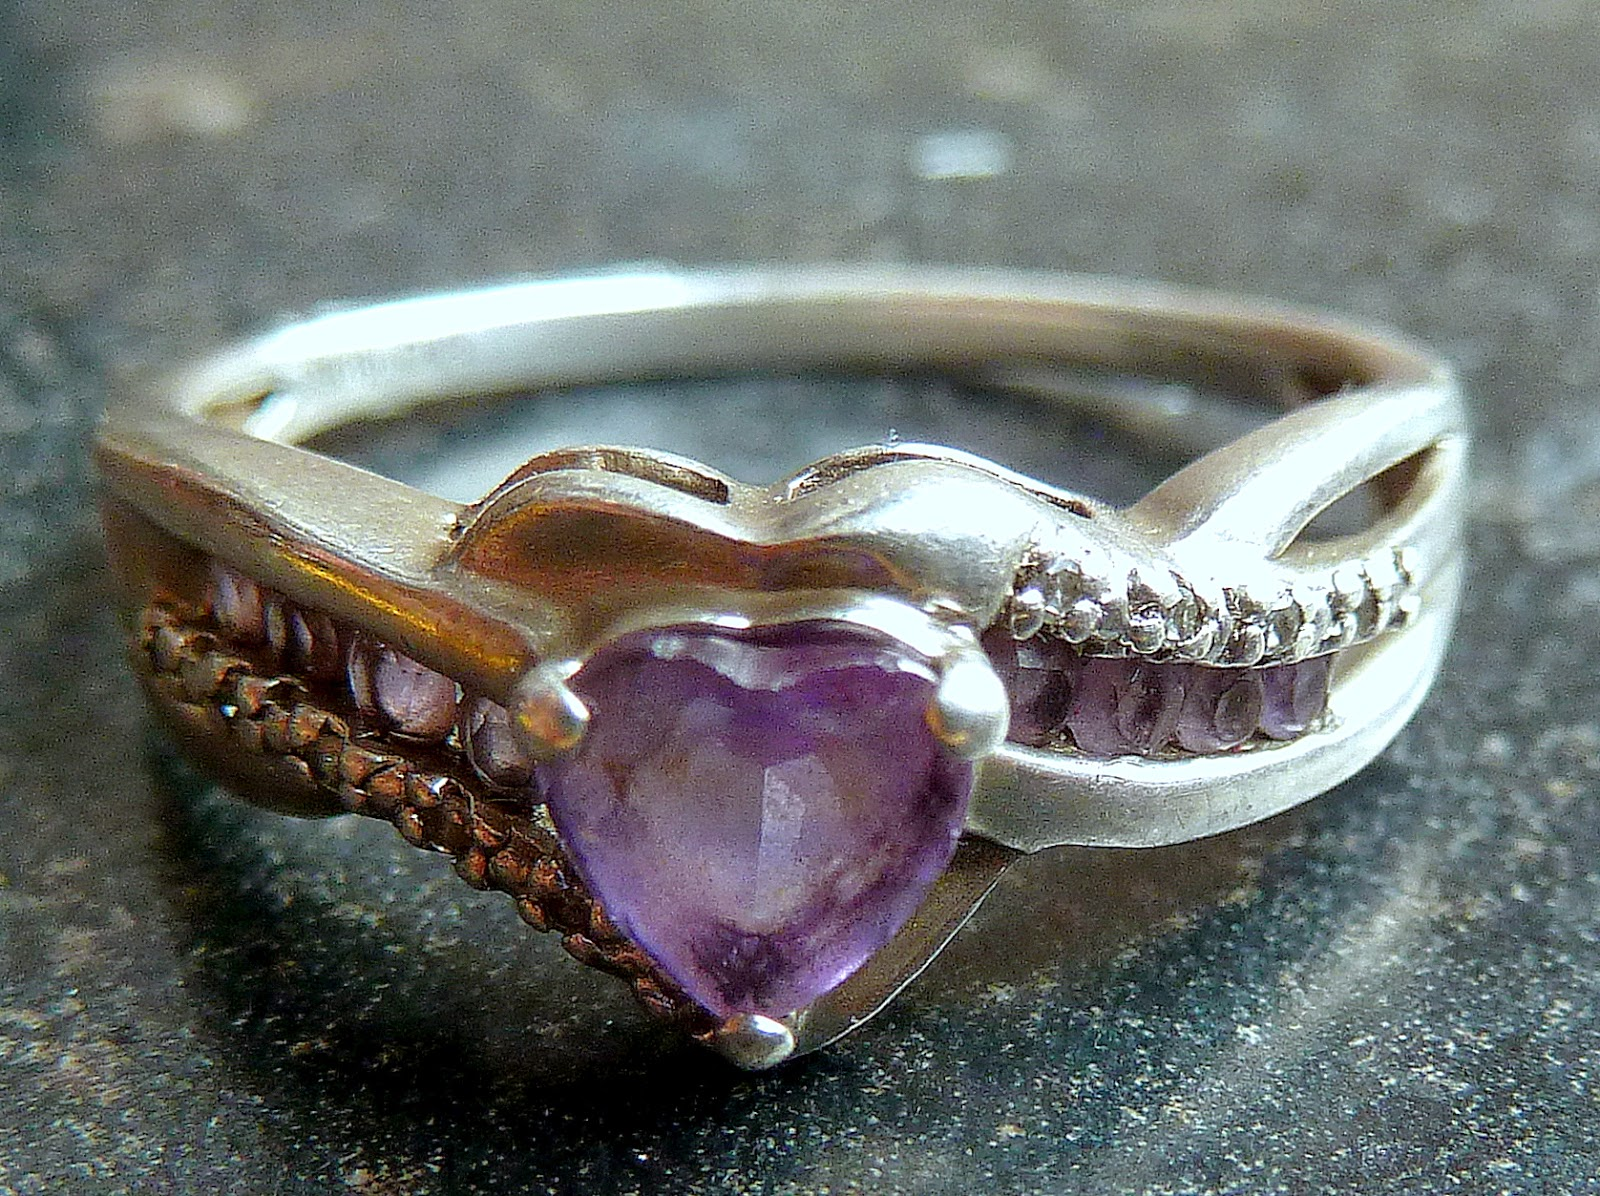 http://www.kcavintagegems.uk/silver-diamond-and-amethyst-candy-hearts-ring-139-p.asp